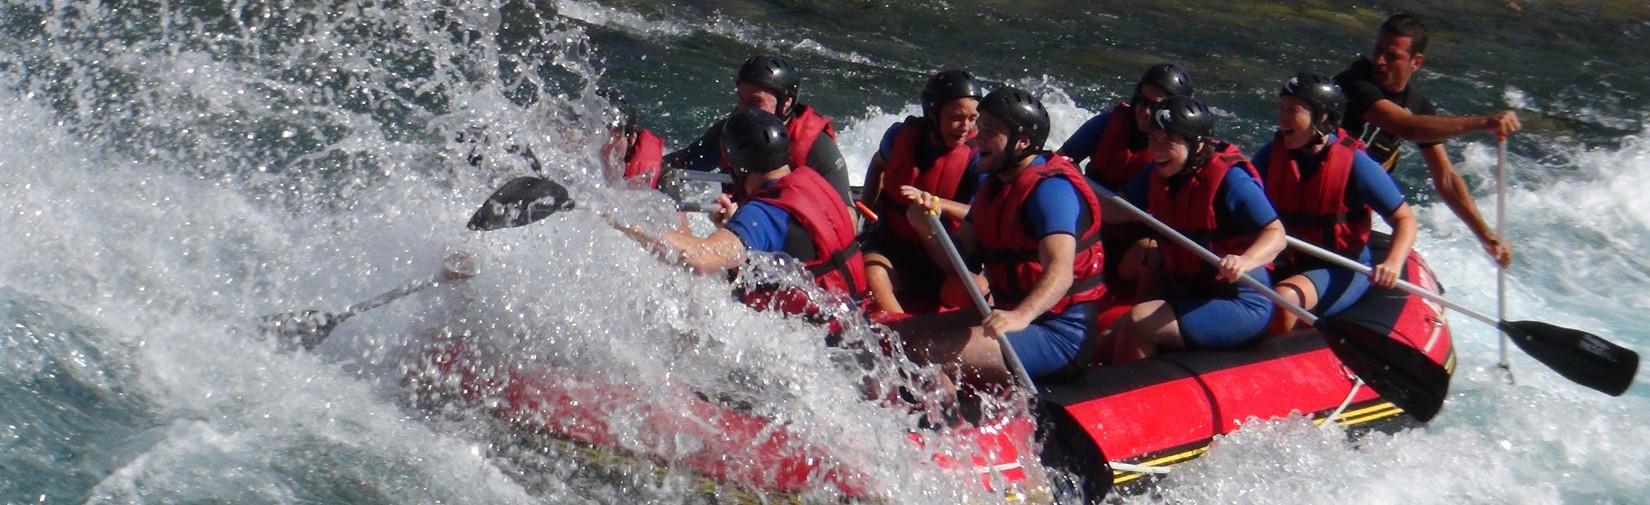 Over night camping in  trishuli river and white water rafting